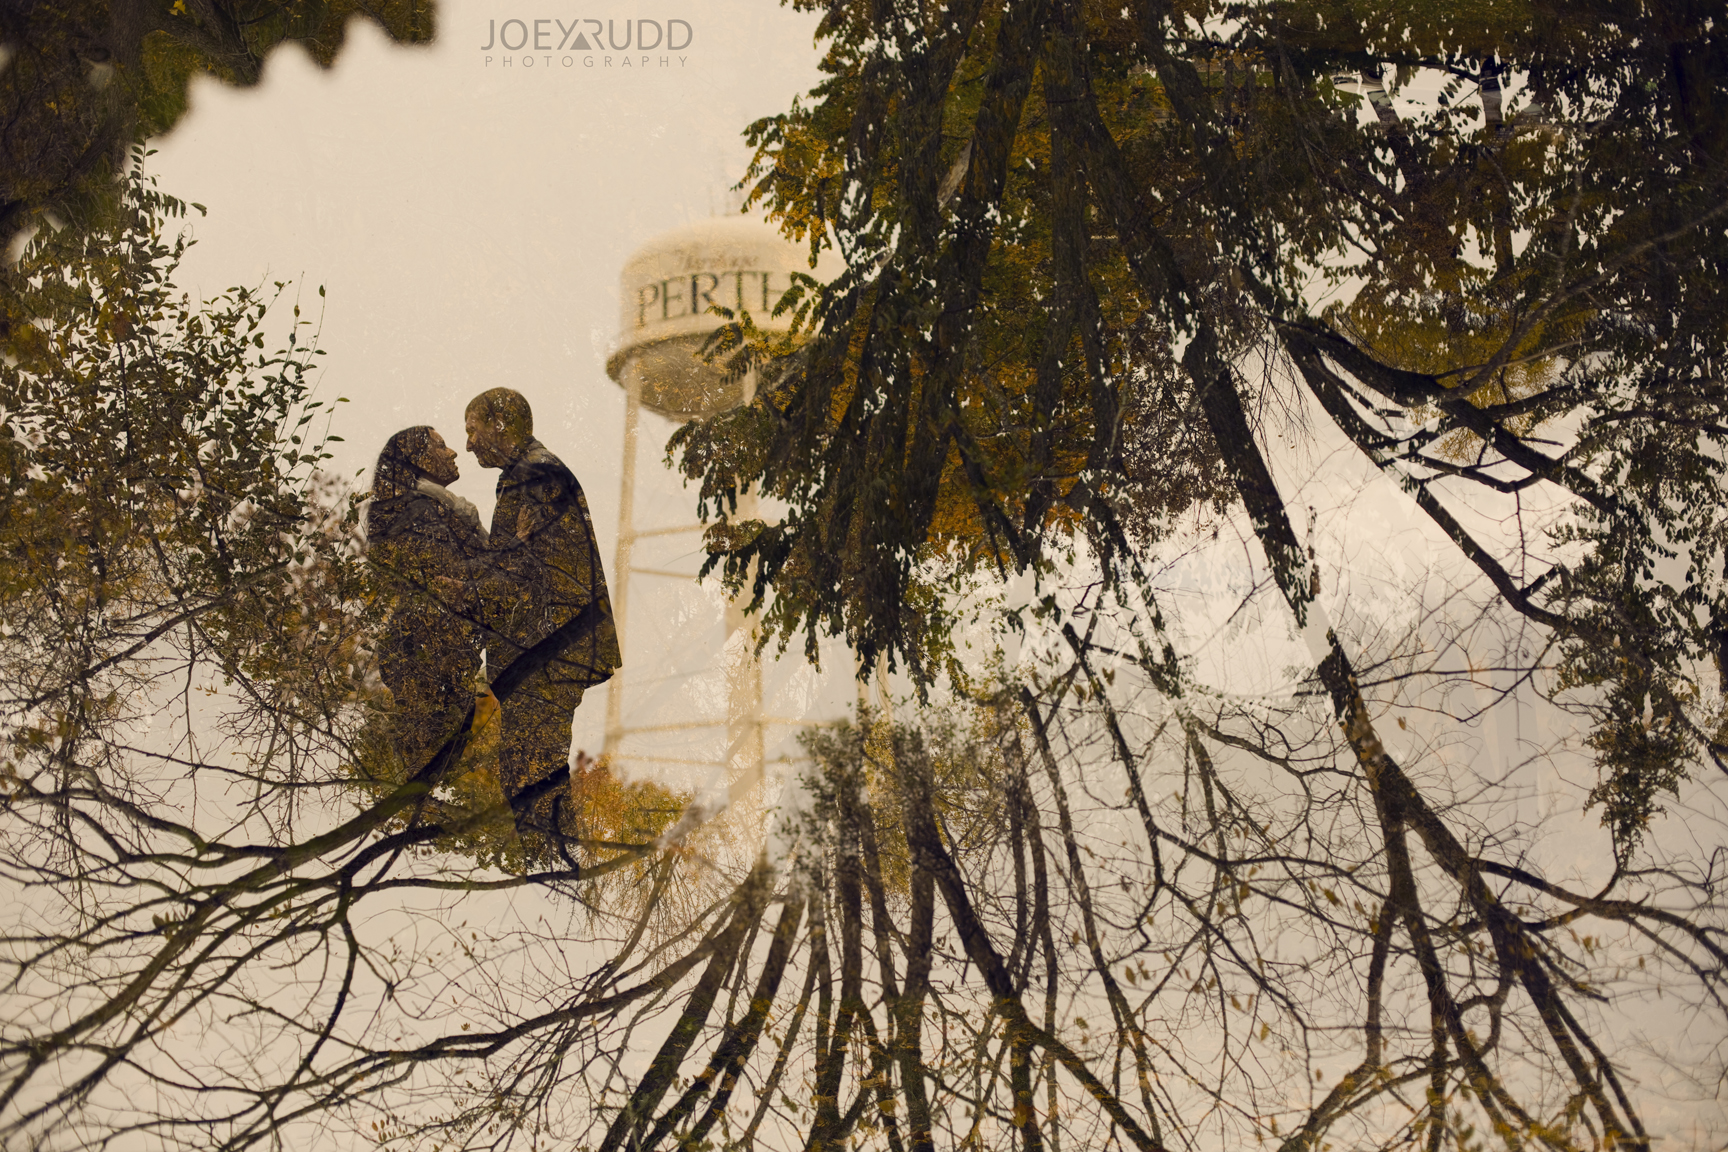 Double Exposure Photo by Joey Rudd Photography Award Winning Ottawa Wedding Photographer Engagement Perth Stewart Park